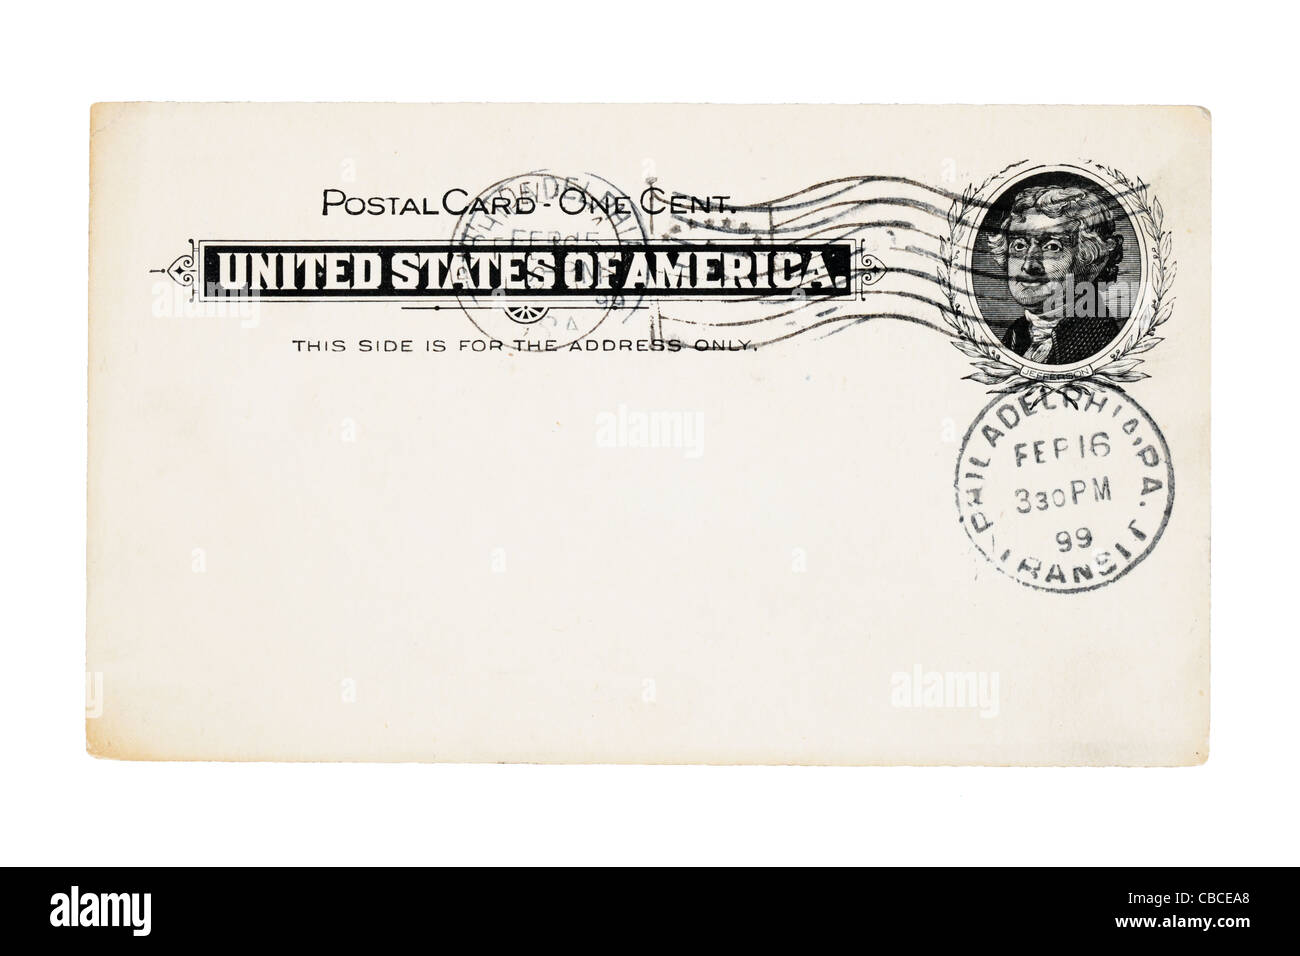 1899 canceled antique post card from the United States with one cent stamp isolated on white background - Stock Image